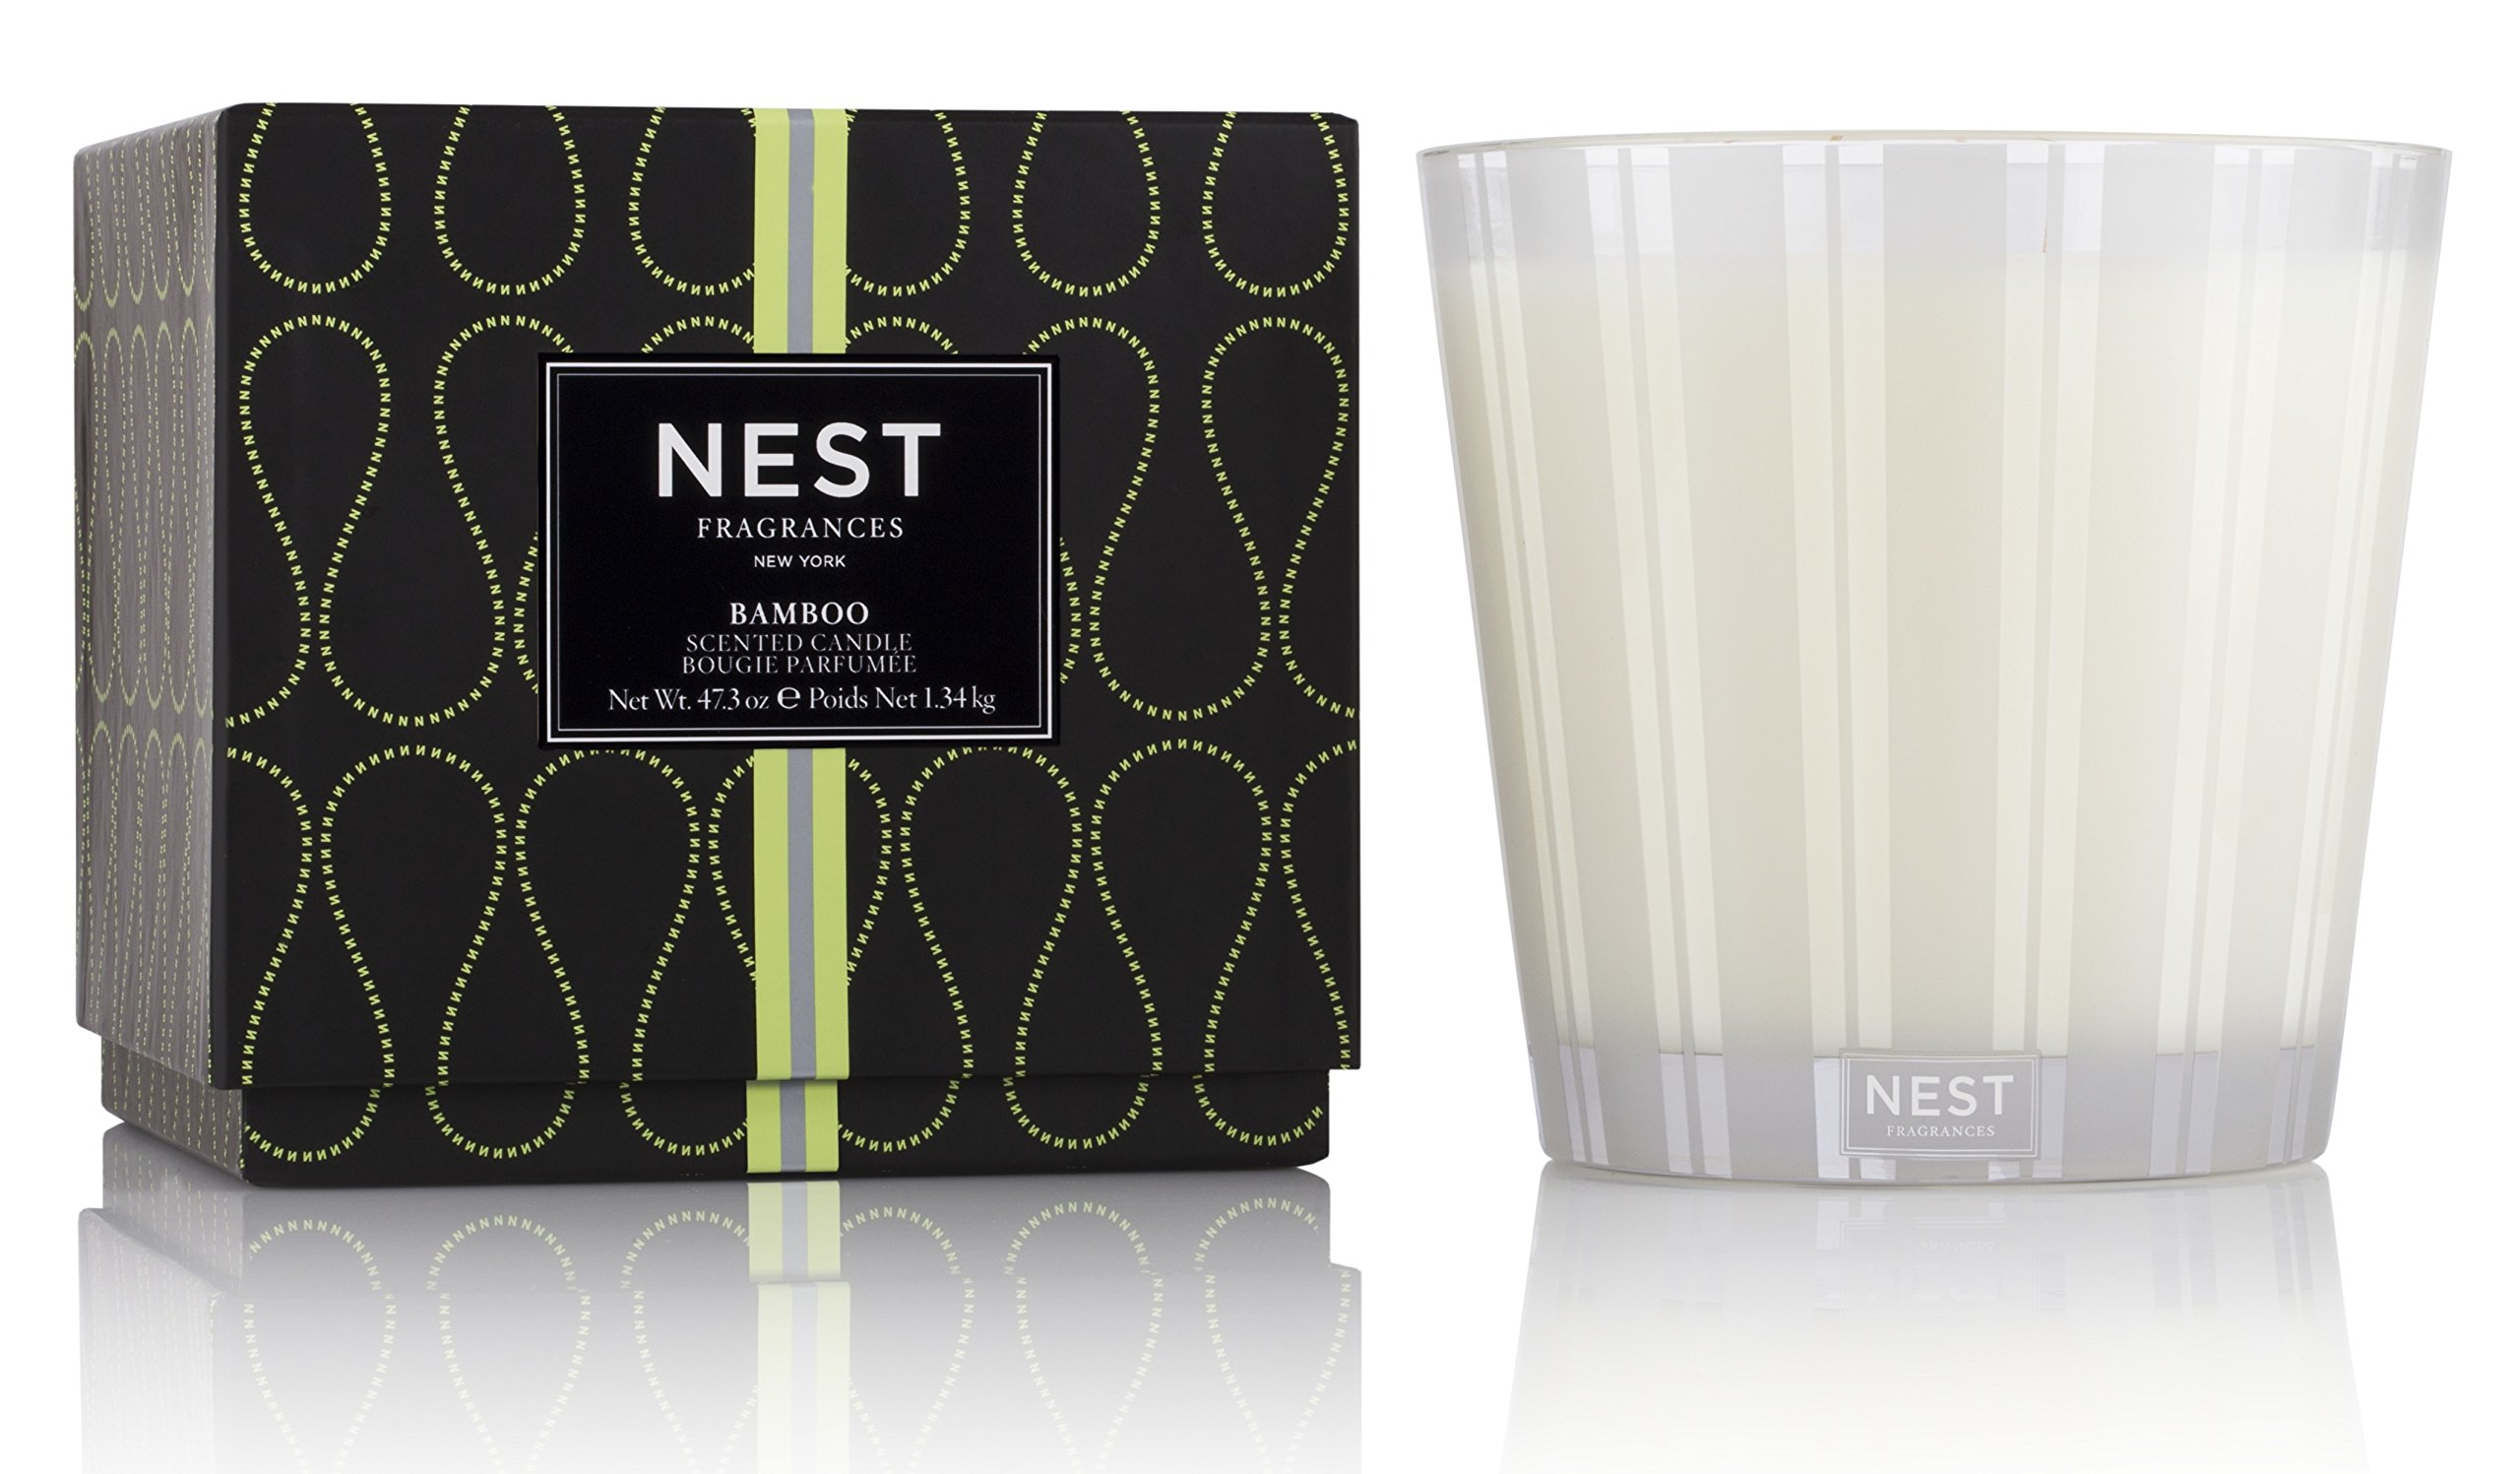 NEST Fragrances Bamboo Luxury Candle, 47.3 oz